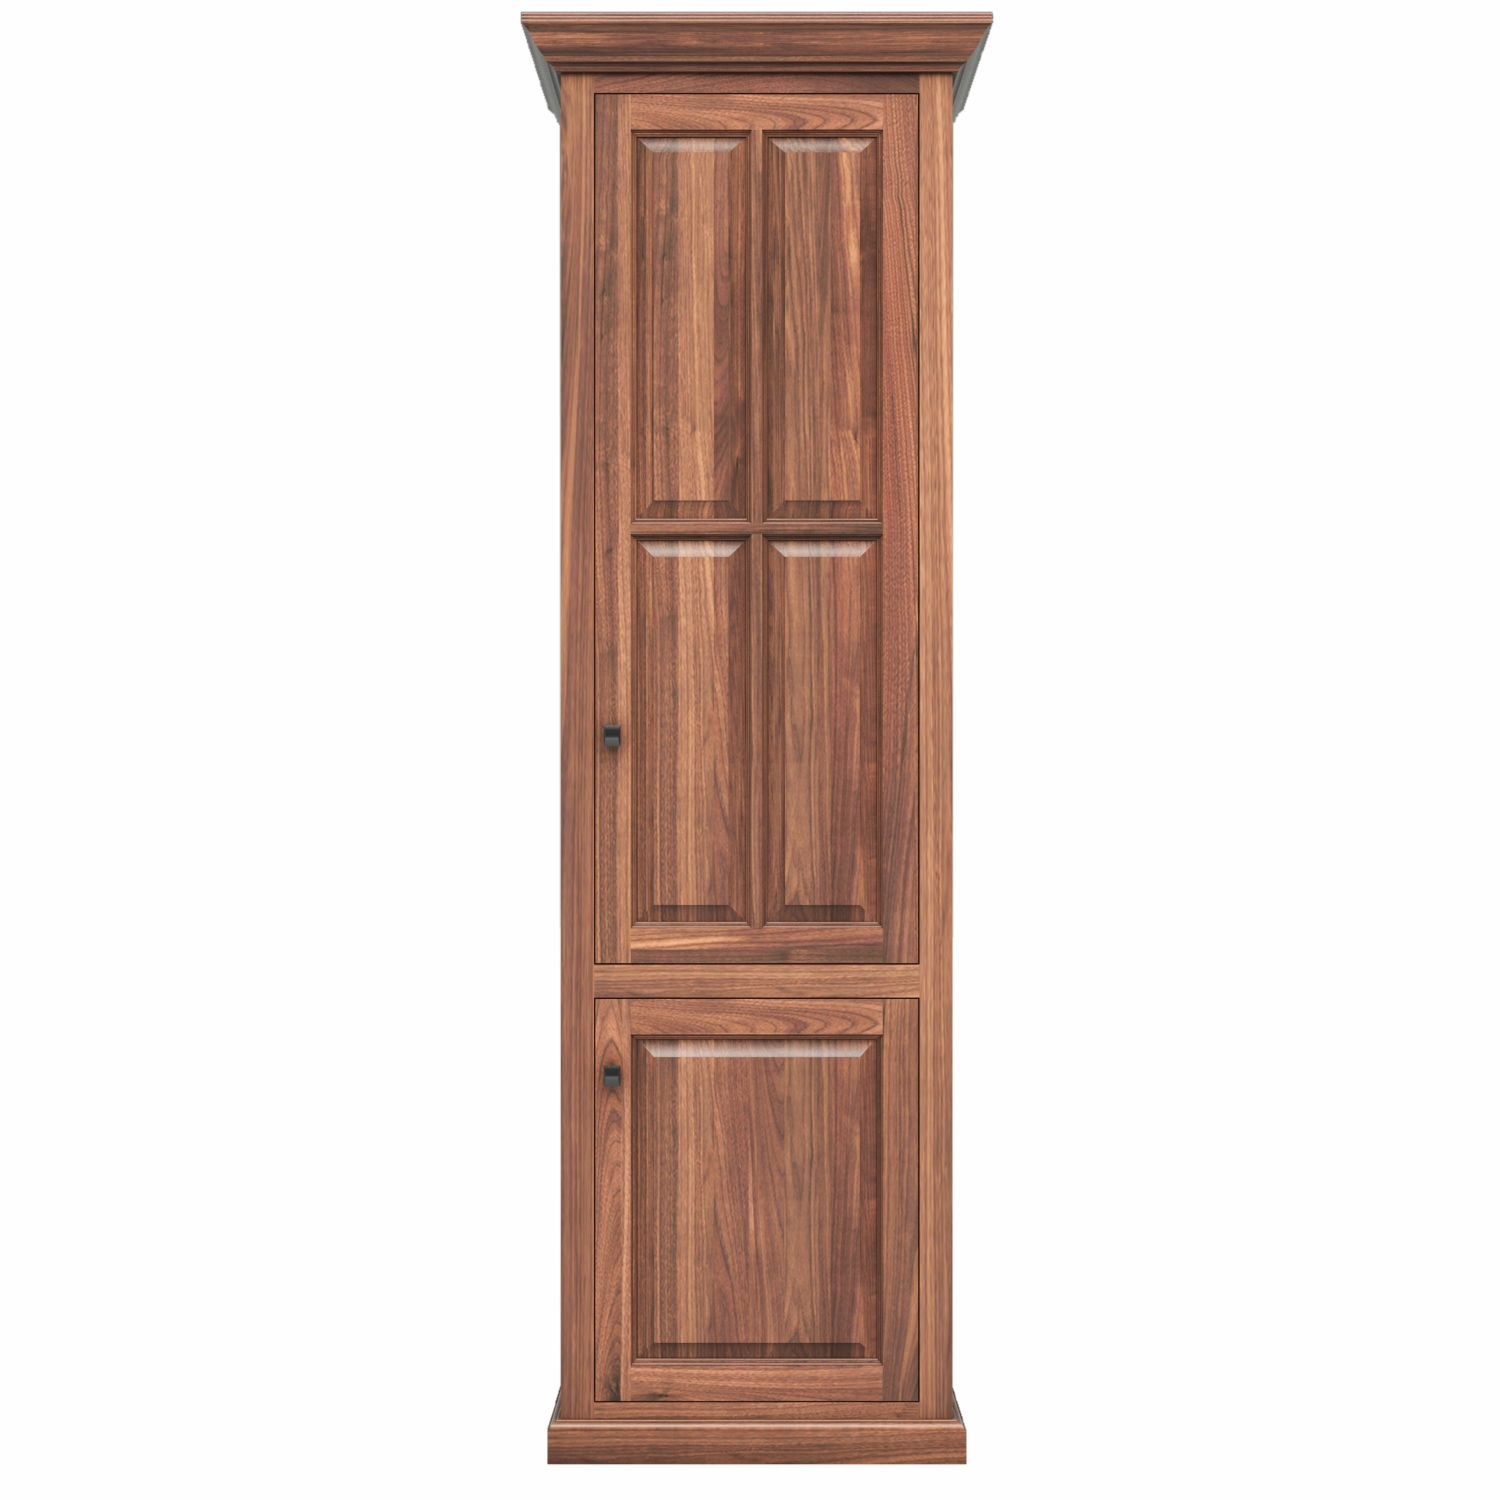 Woodley Brothers Furniture -  Coal Creek Home Office 24 Bookcase - Shown with wood doors also available with glass doors